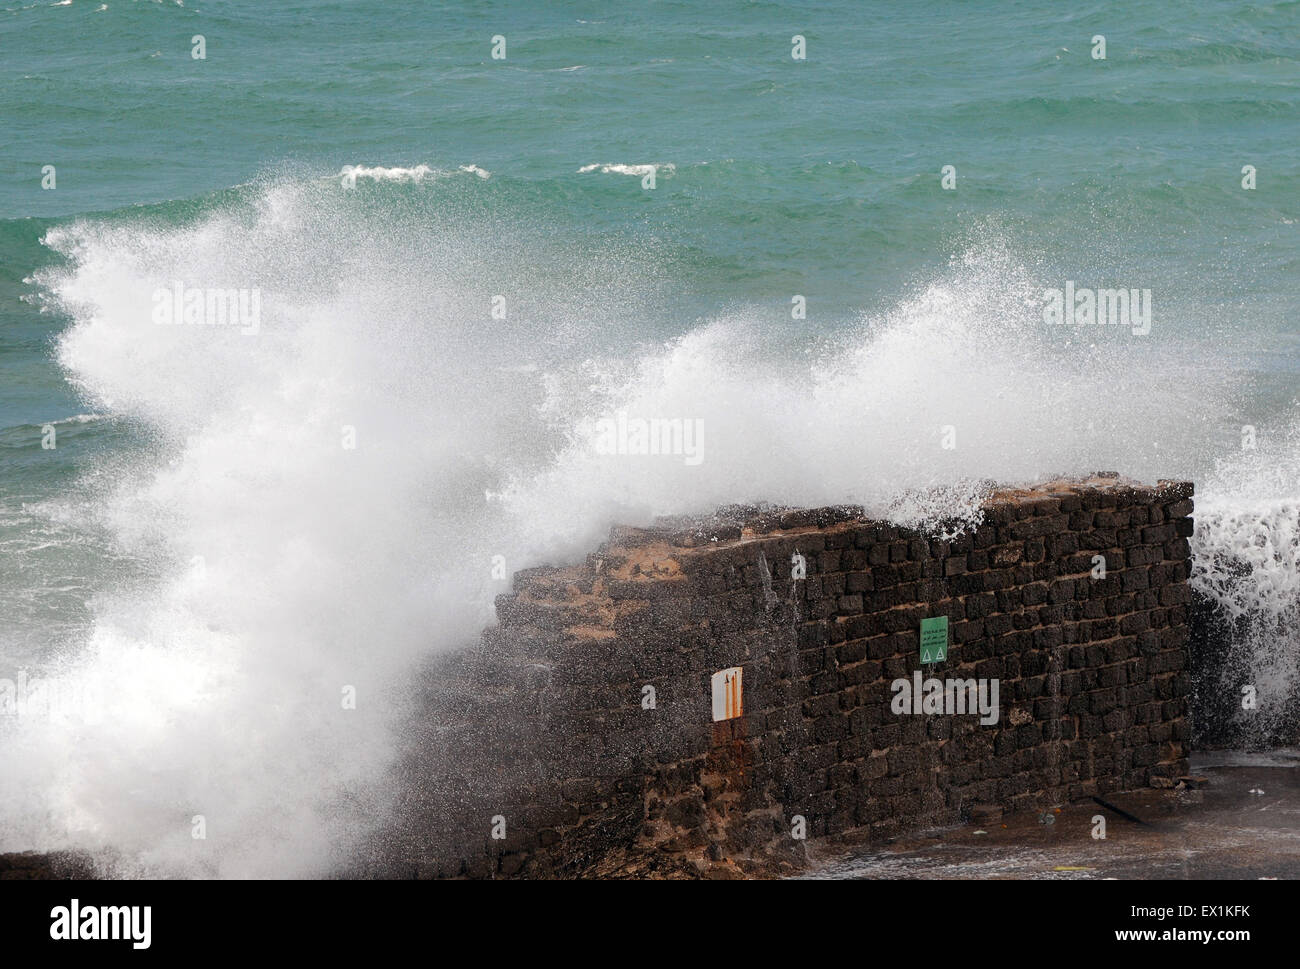 Big storm wave breaking on a stone brick wall - Stock Image